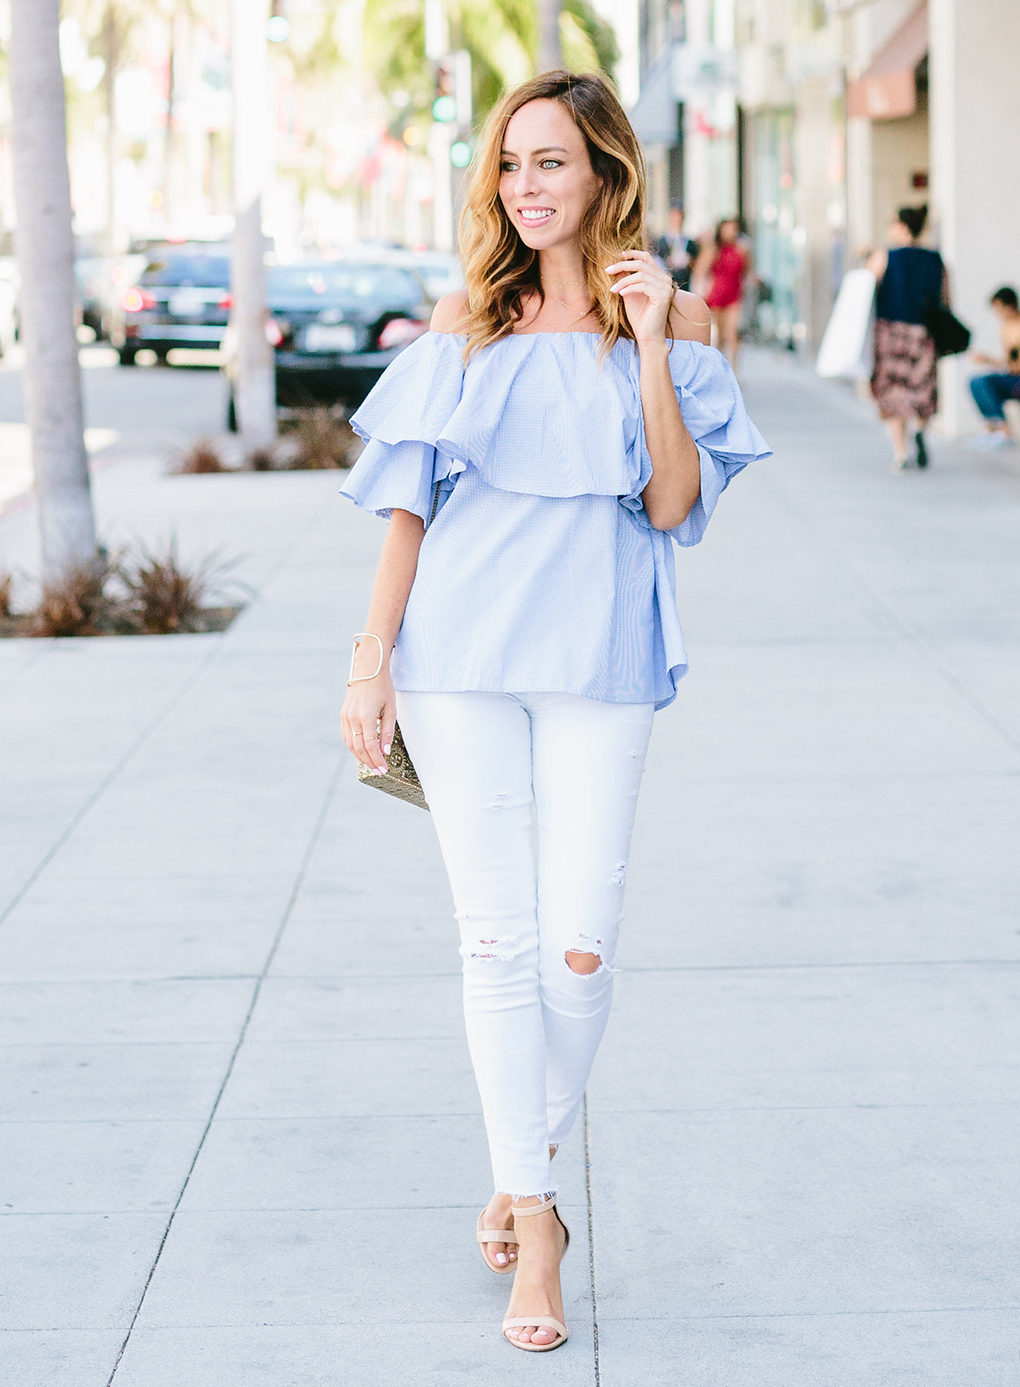 5bd3f86930 Sydne Style wears ruffled off the shoulder top for summer fashion trends  street style